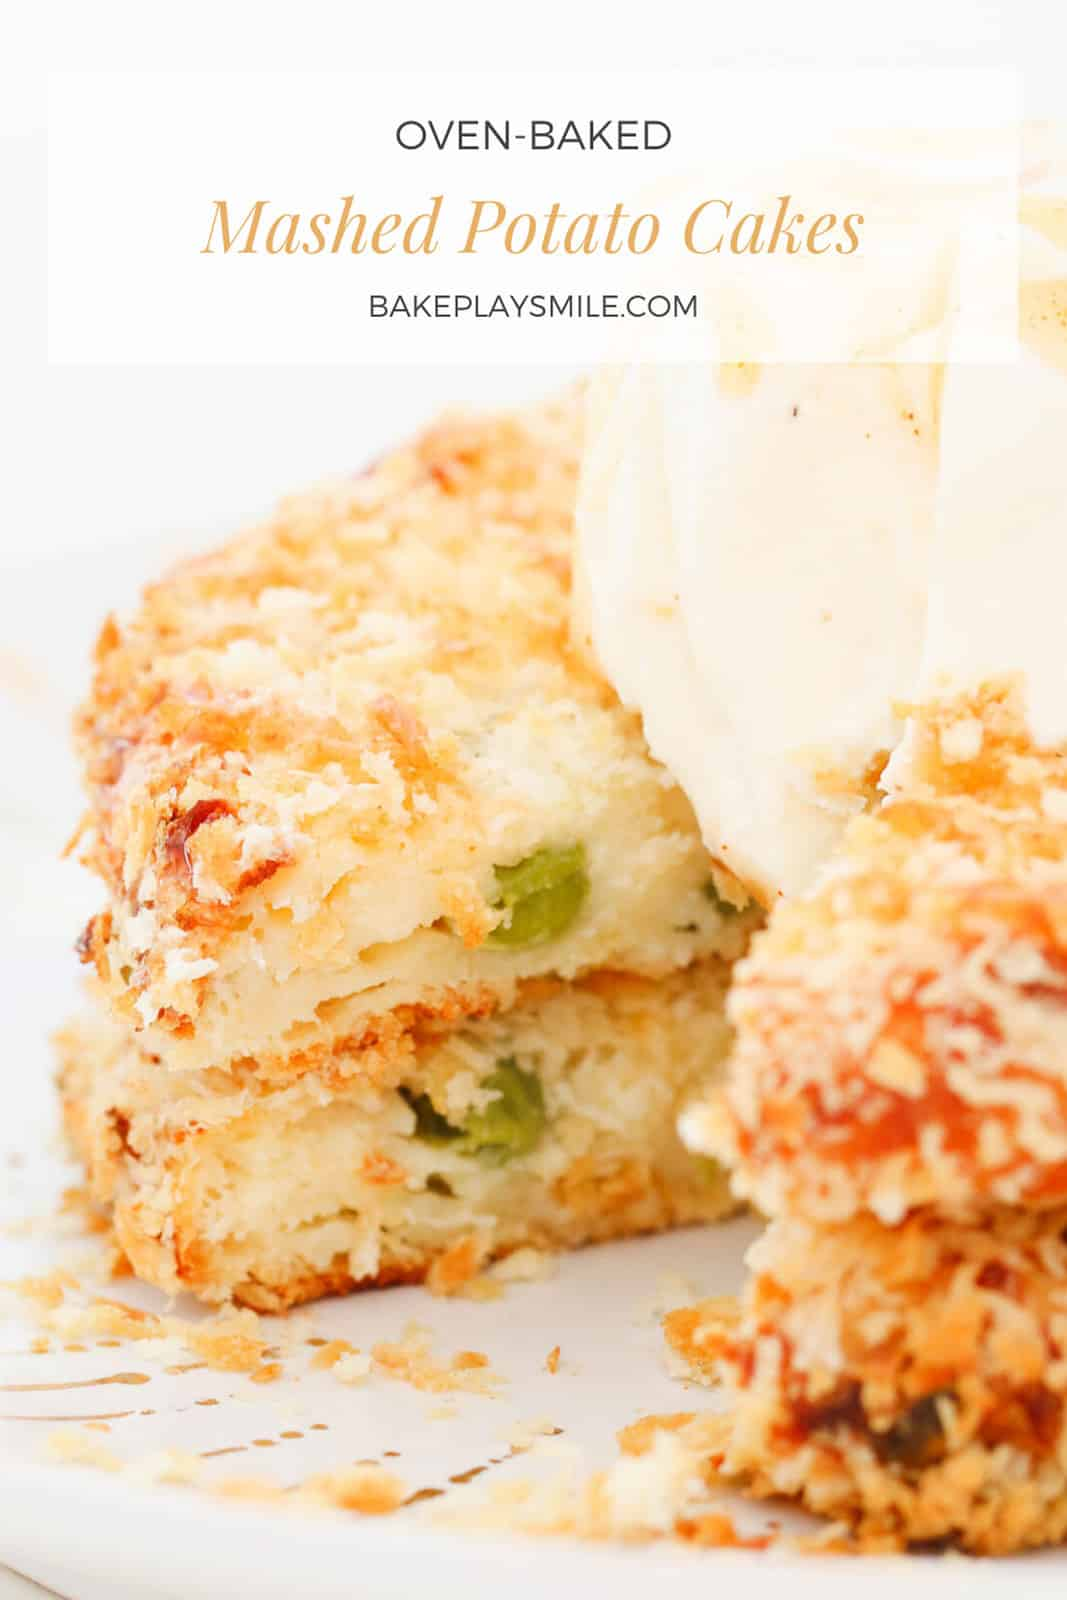 A Pinterest image with the text overlay 'Mashed Potato Cakes' in front of a stack of half eaten potato cakes.